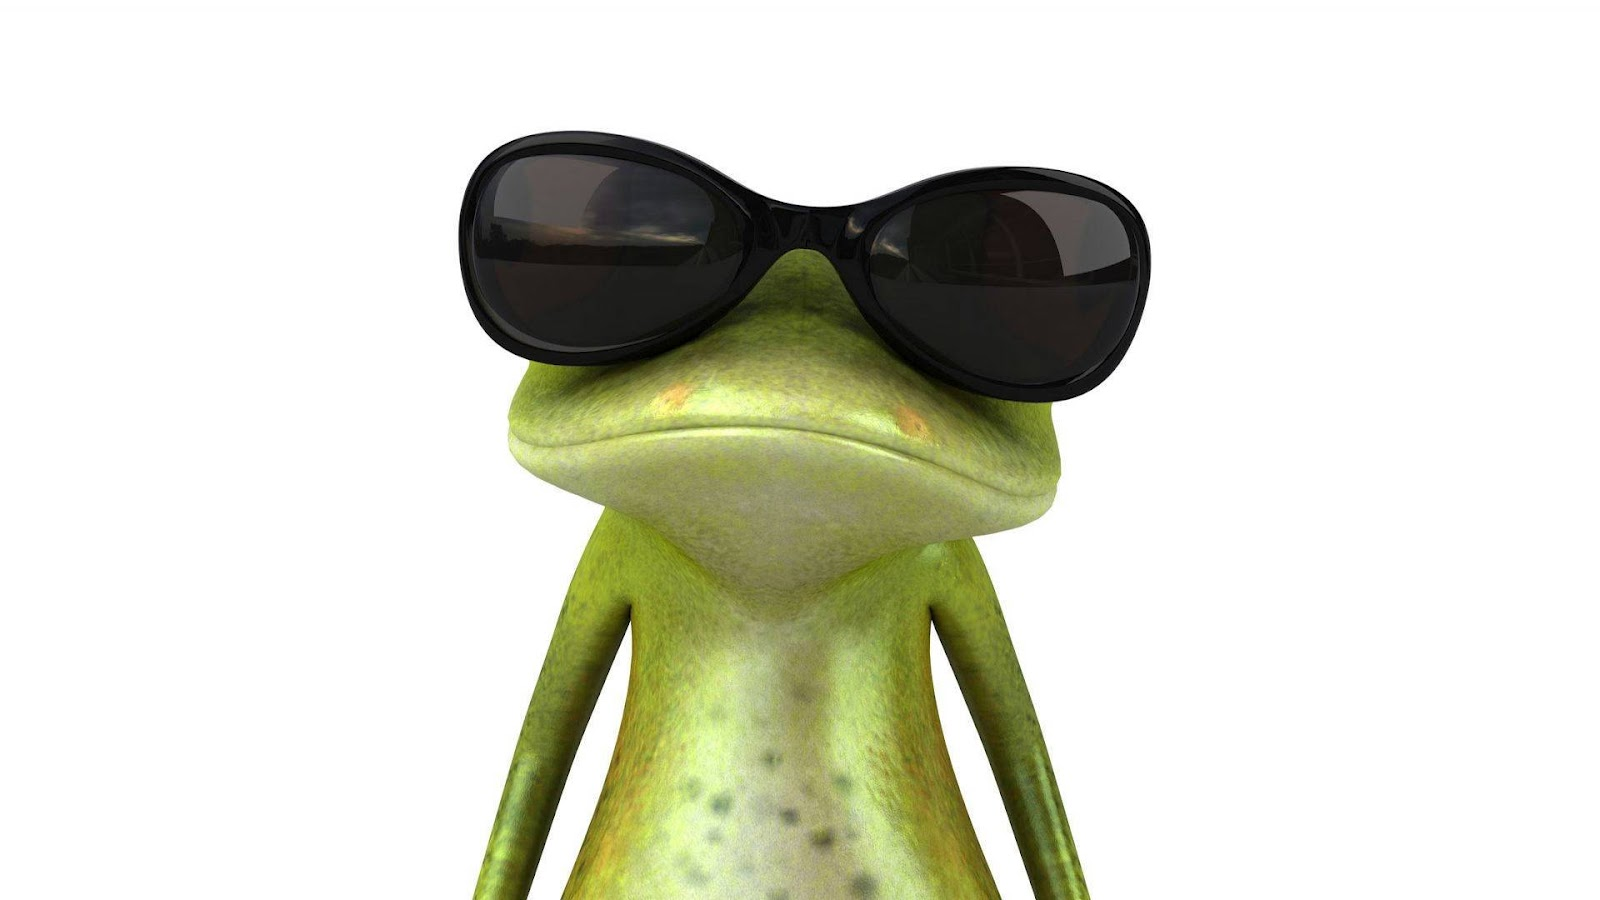 Frog Image Funny